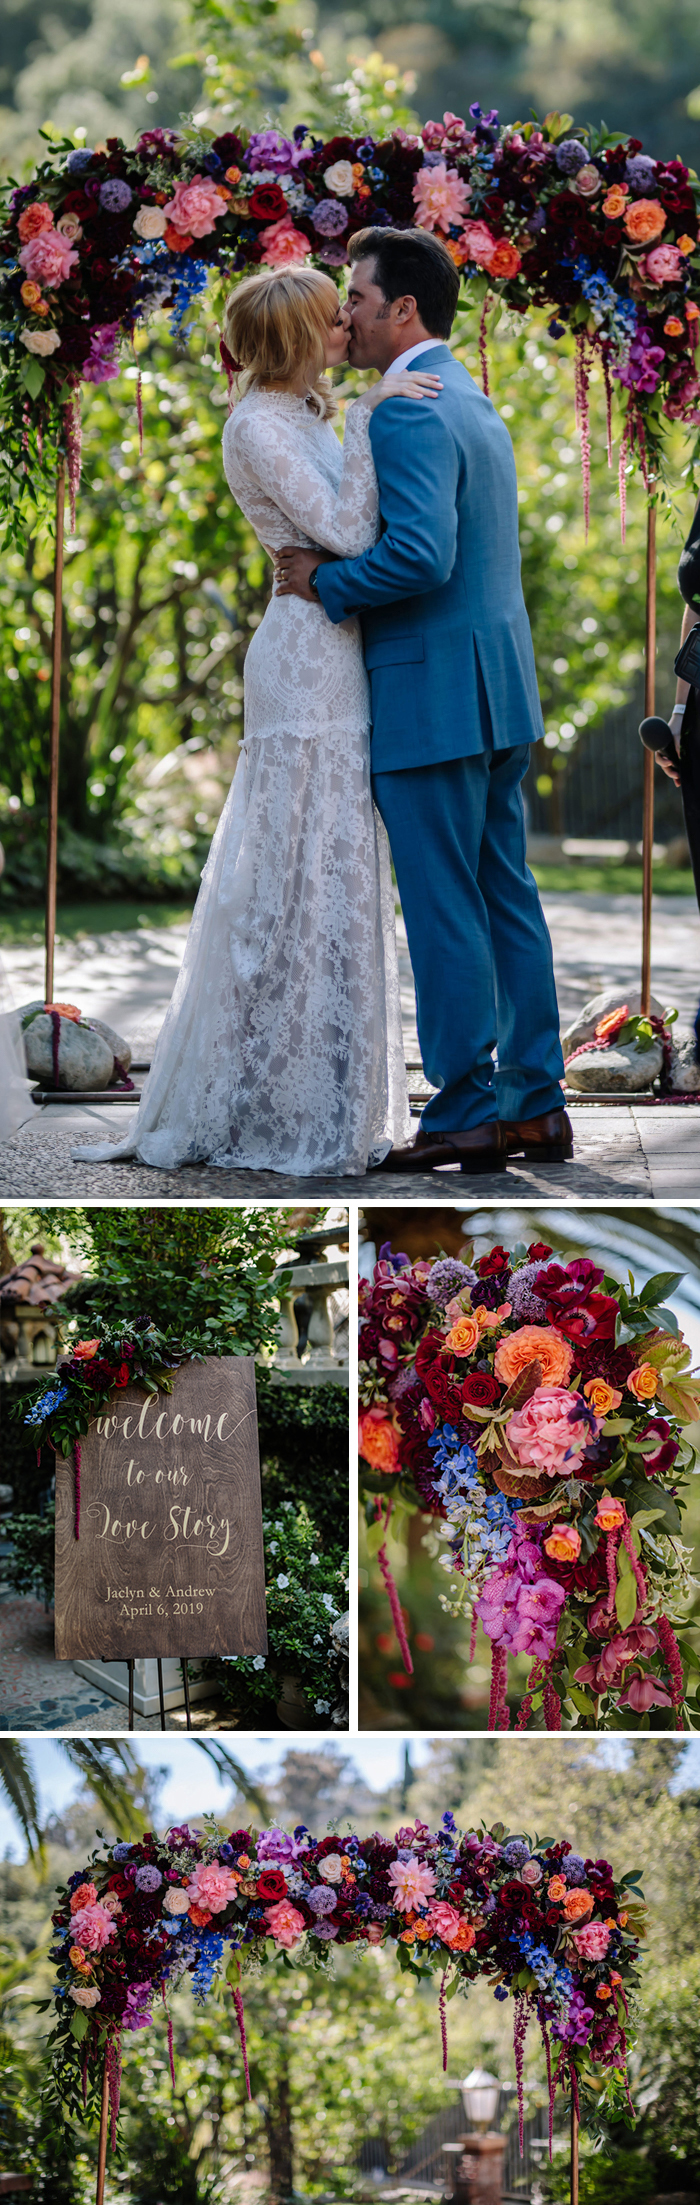 Ceremony details from our Houdini Estate wedding featuring a floral arch and welcome sign decor by Winston and Main.